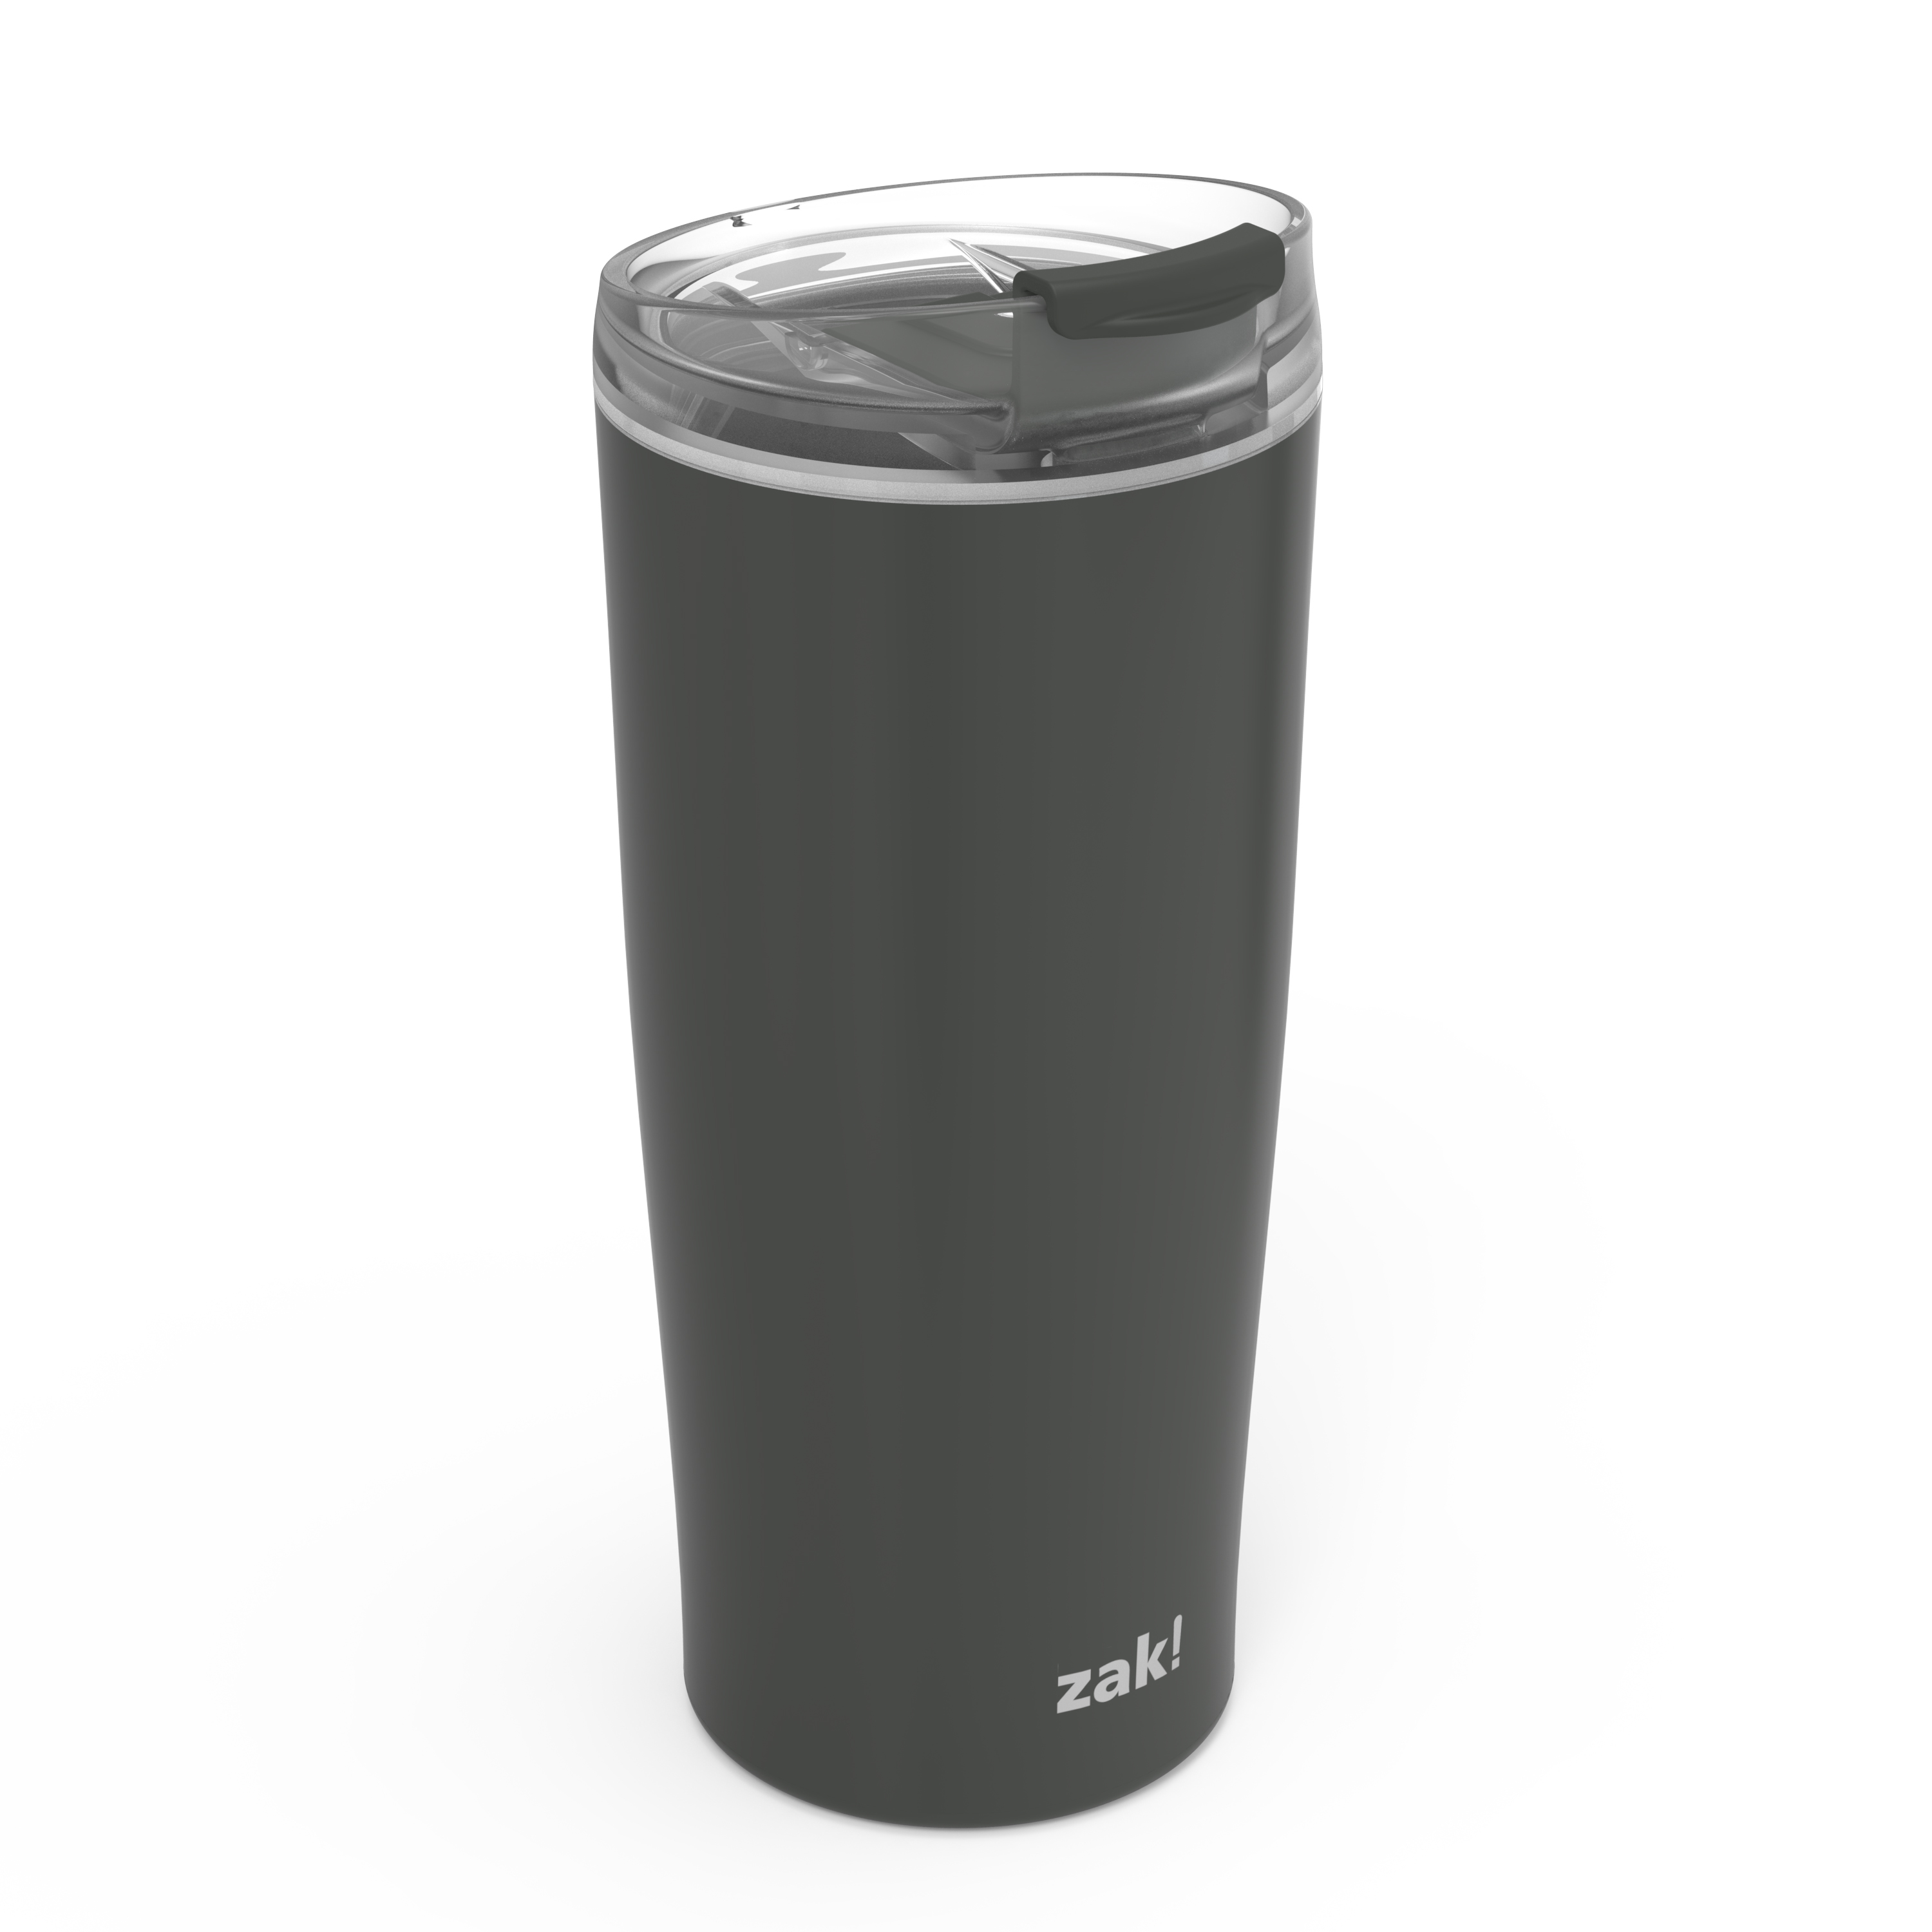 Aberdeen 20 ounce Vacuum Insulated Stainless Steel Tumbler, Charcoal slideshow image 2